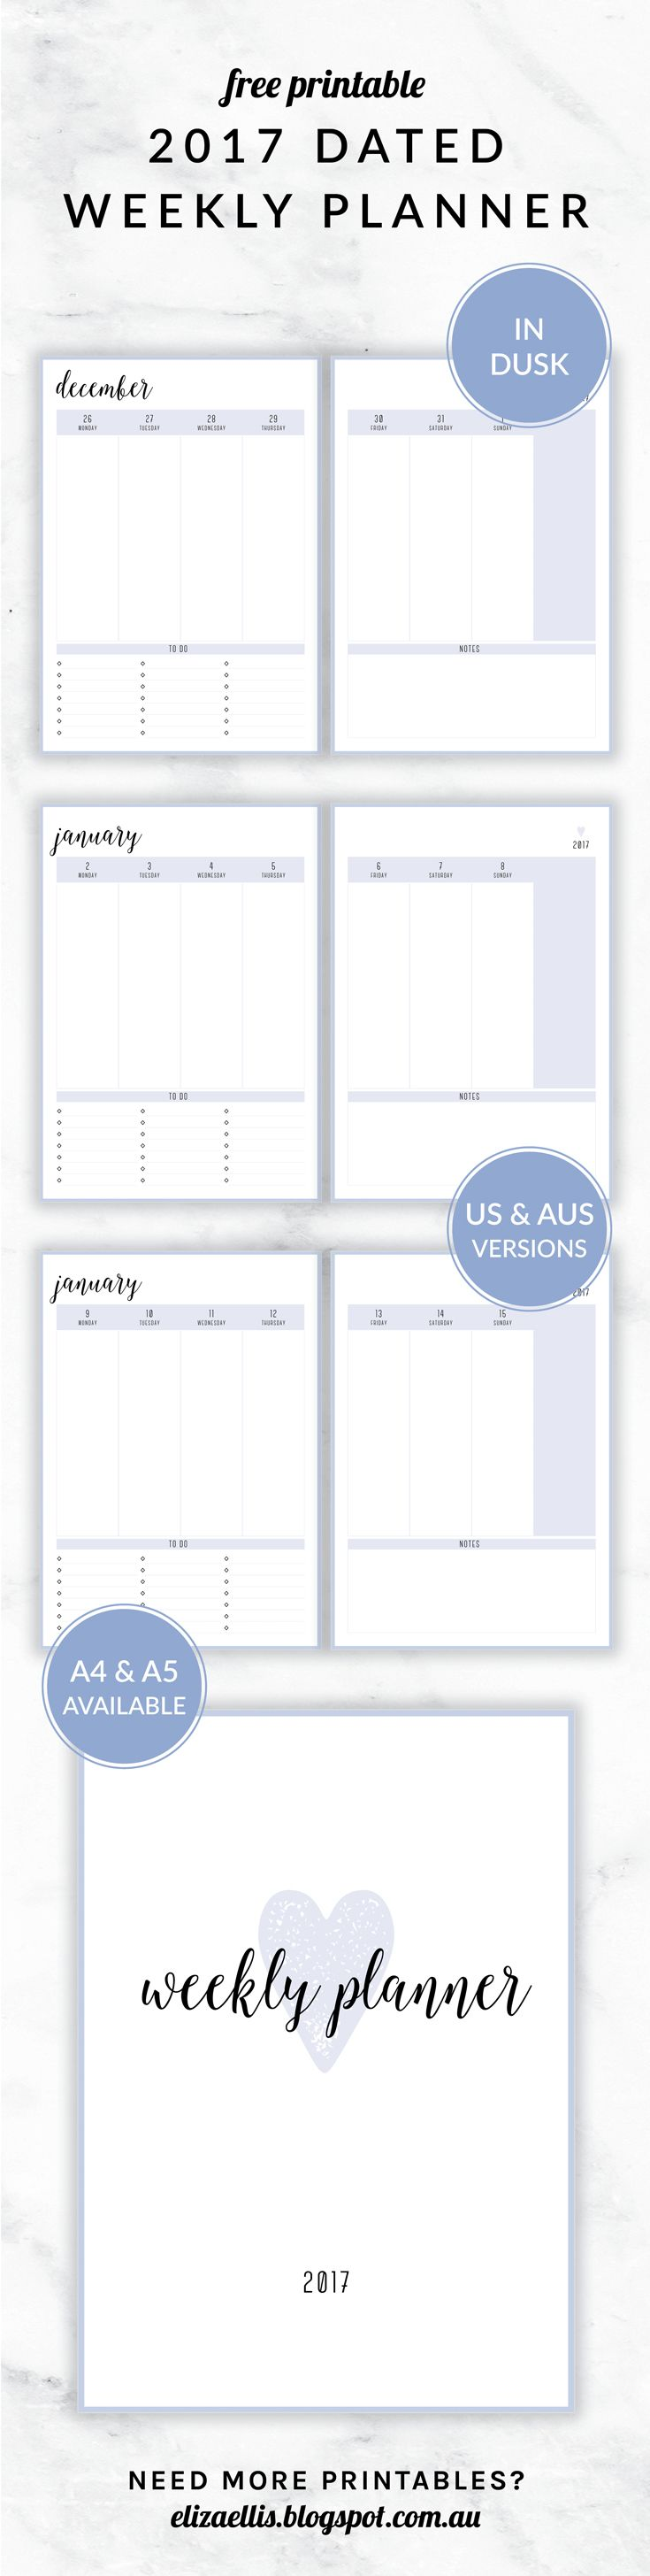 83 best diy planner images on Pinterest | Planners, Notebook and ...